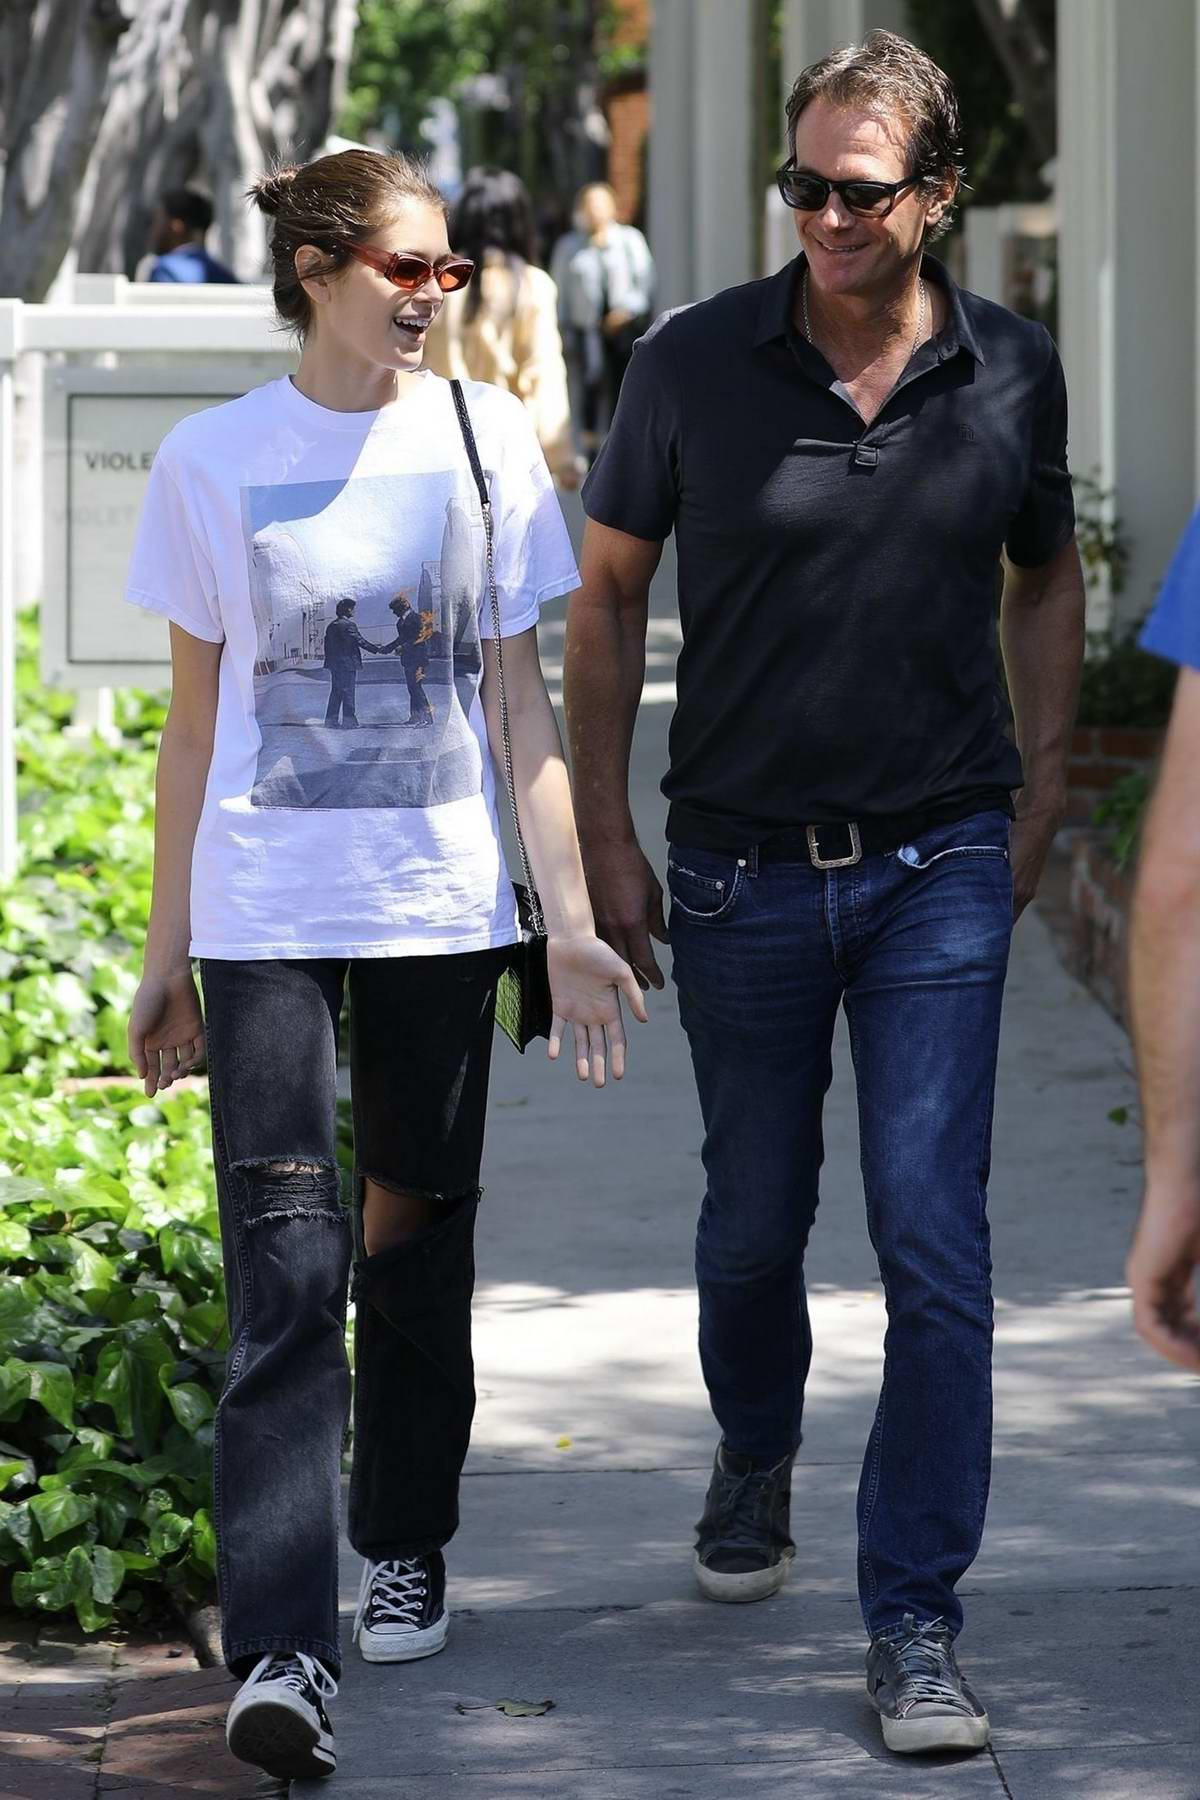 Kaia Gerber steps out with dad Rande Gerber for some shopping in West Hollywoood, Los Angeles